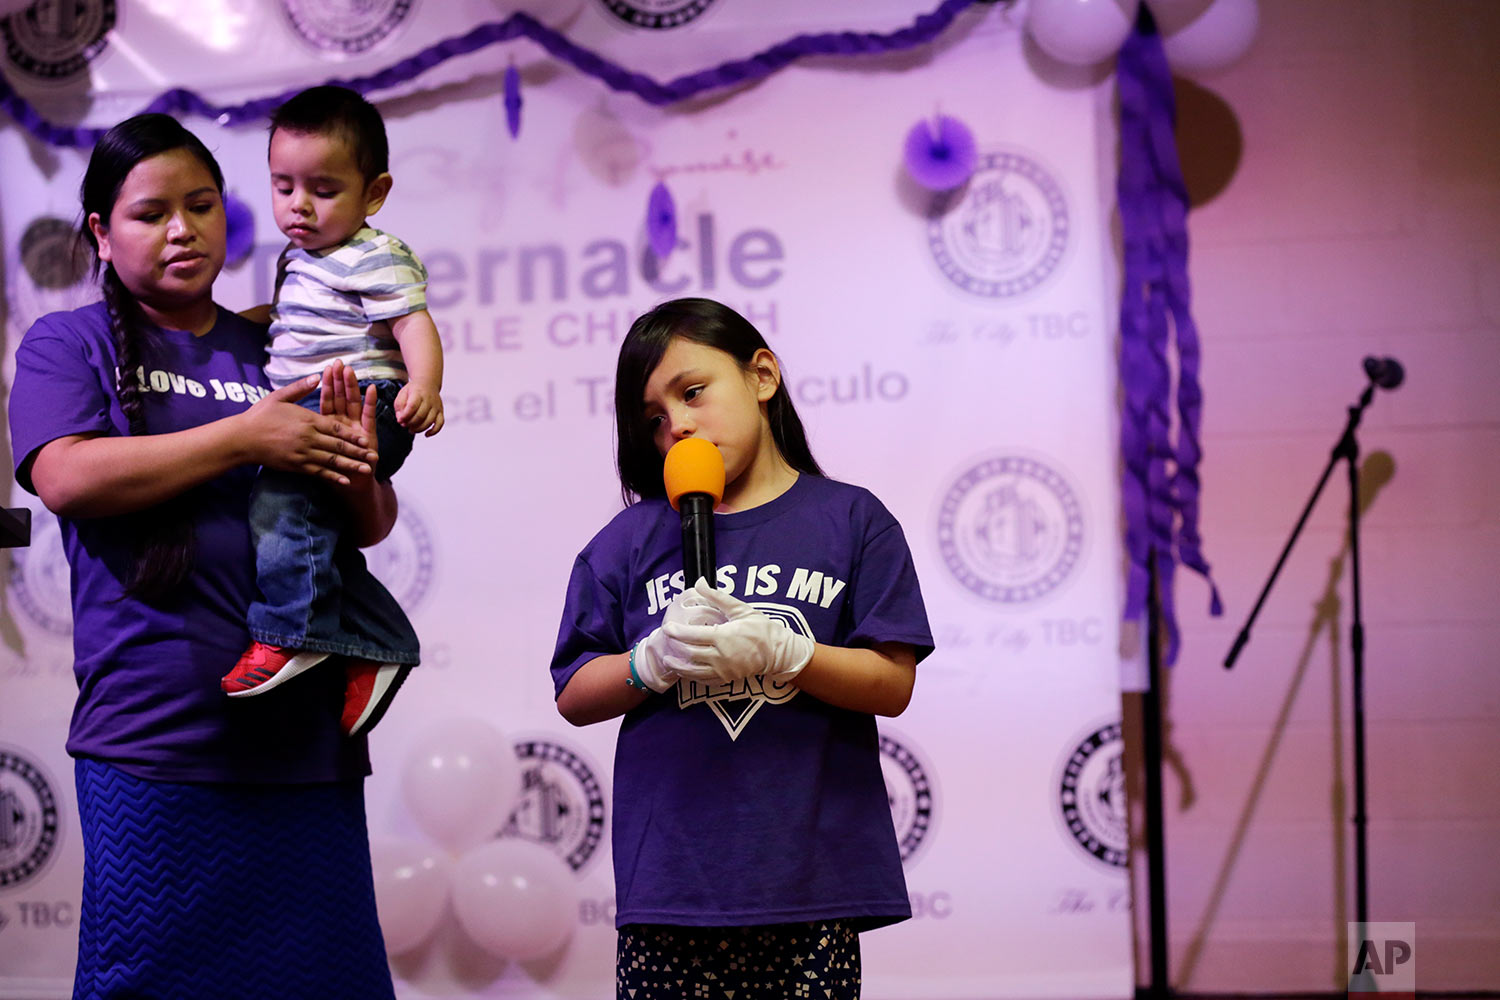 Holding her youngest son, Alma Vazquez stands next to her stepdaughter, Neveah Tomas, as she sings a song at a church event in Fairfield, Ohio, on April 28, 2018. A cousin who sometimes cares for the children told Vazquez that she recently heard them saying that if their father was deported, they'd have to leave the country, too. (AP Photo/Gregory Bull)